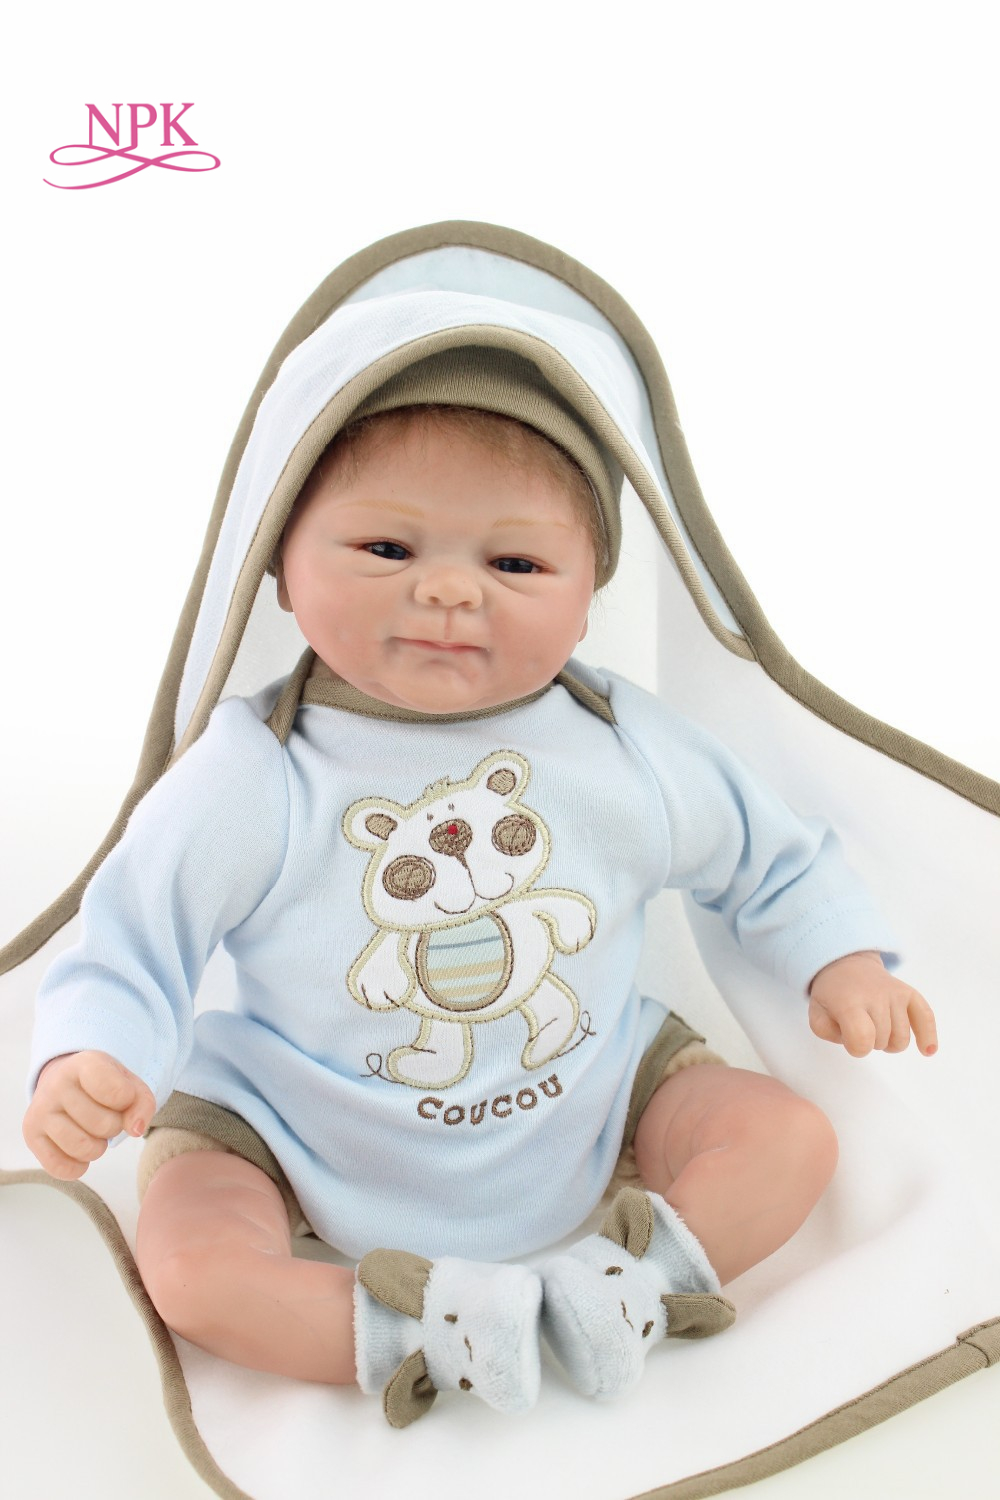 NPK reborn doll with soft real gentle touch hot sale Adorable reborn dollalive lifelike soft dolls Children gifts toys